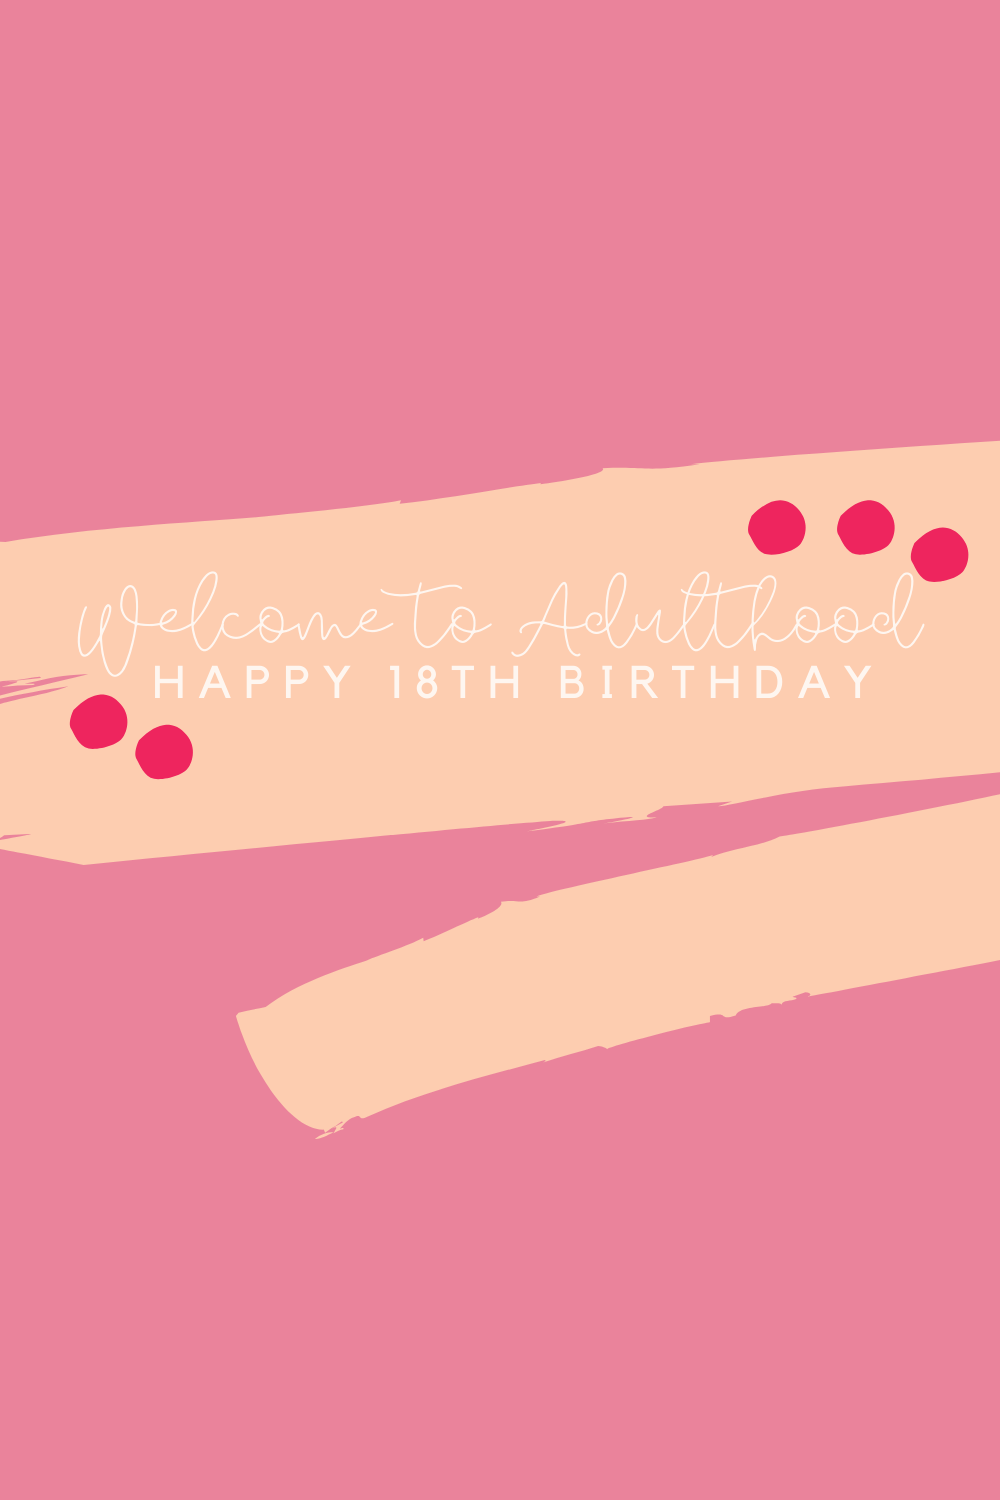 Happy 18th Birthday Welcome To adulthood Quotes